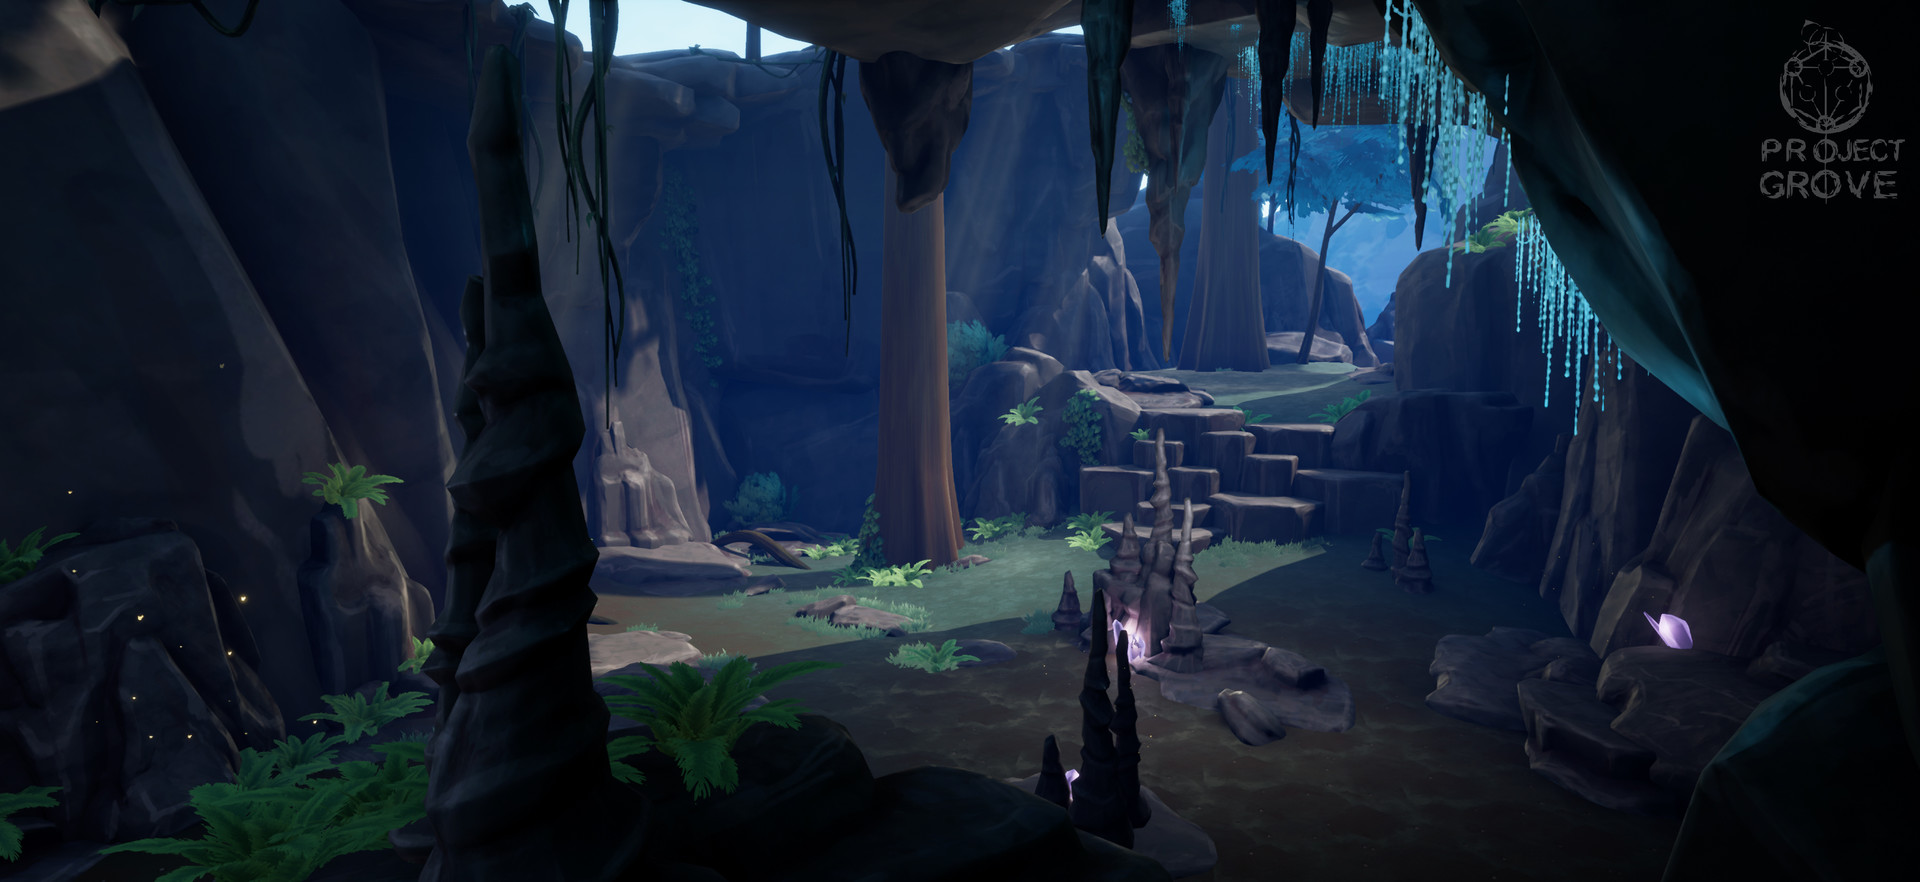 3D environment I put together with the assets I made.